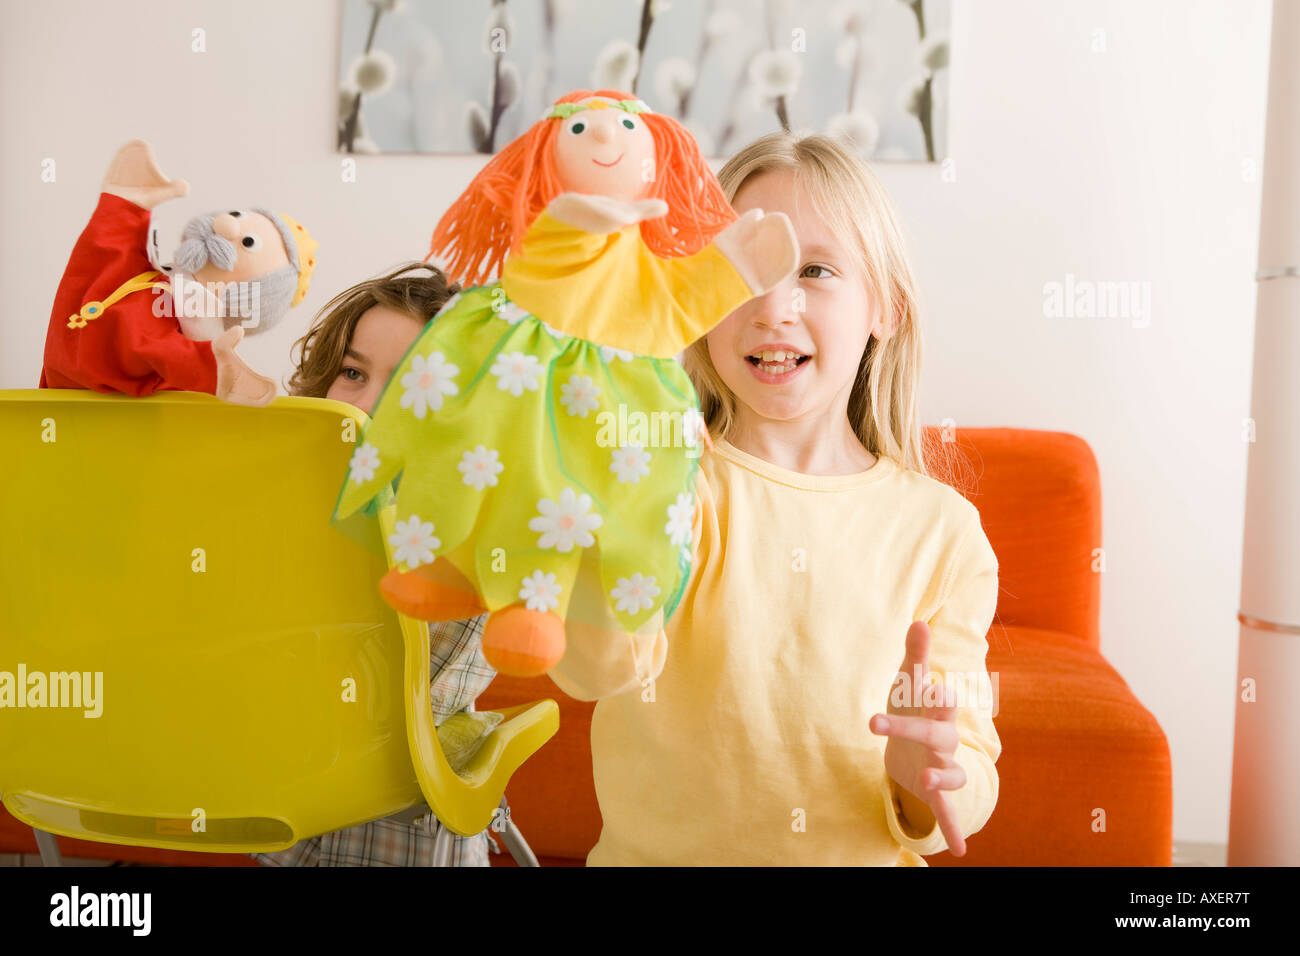 Girl (8-9) and boy (6-7) playing with glove puppets - Stock Image